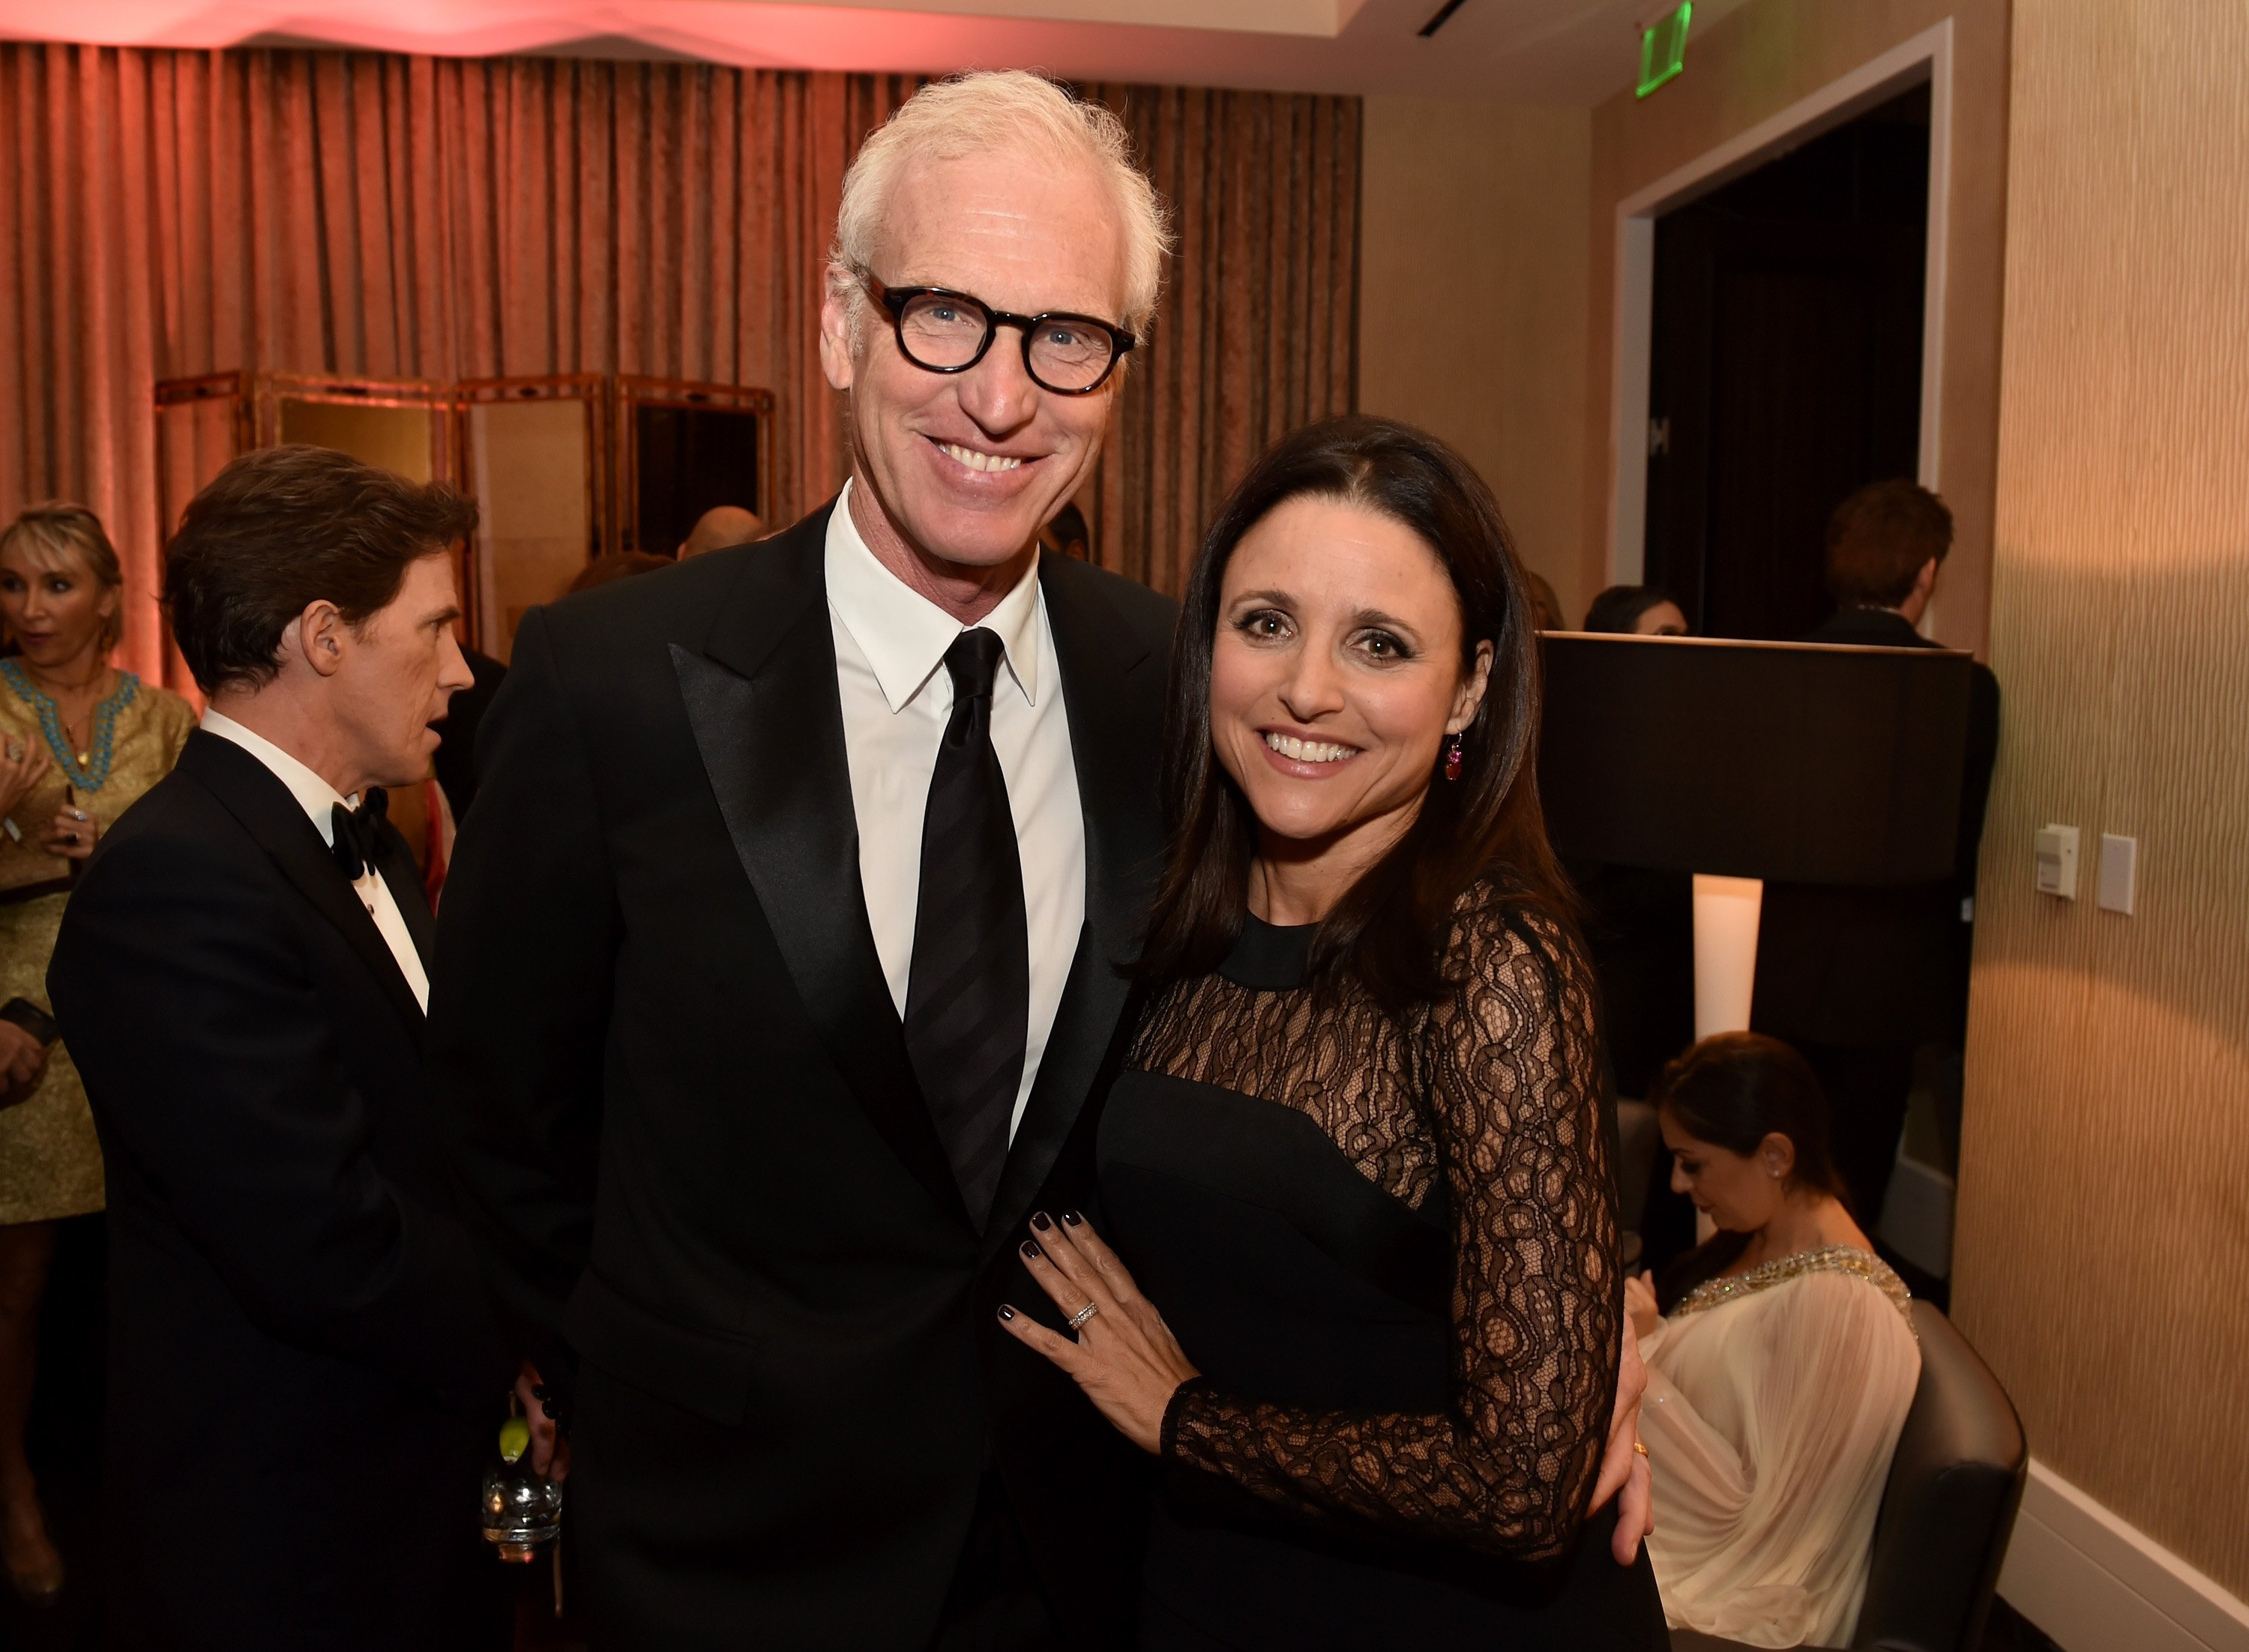 Brad Hall and Julia Louis-Dreyfus attend the BAFTA Los Angeles Jaguar Britannia Awards on October 30, 2014 in Beverly Hills, California | Photo: Getty Images